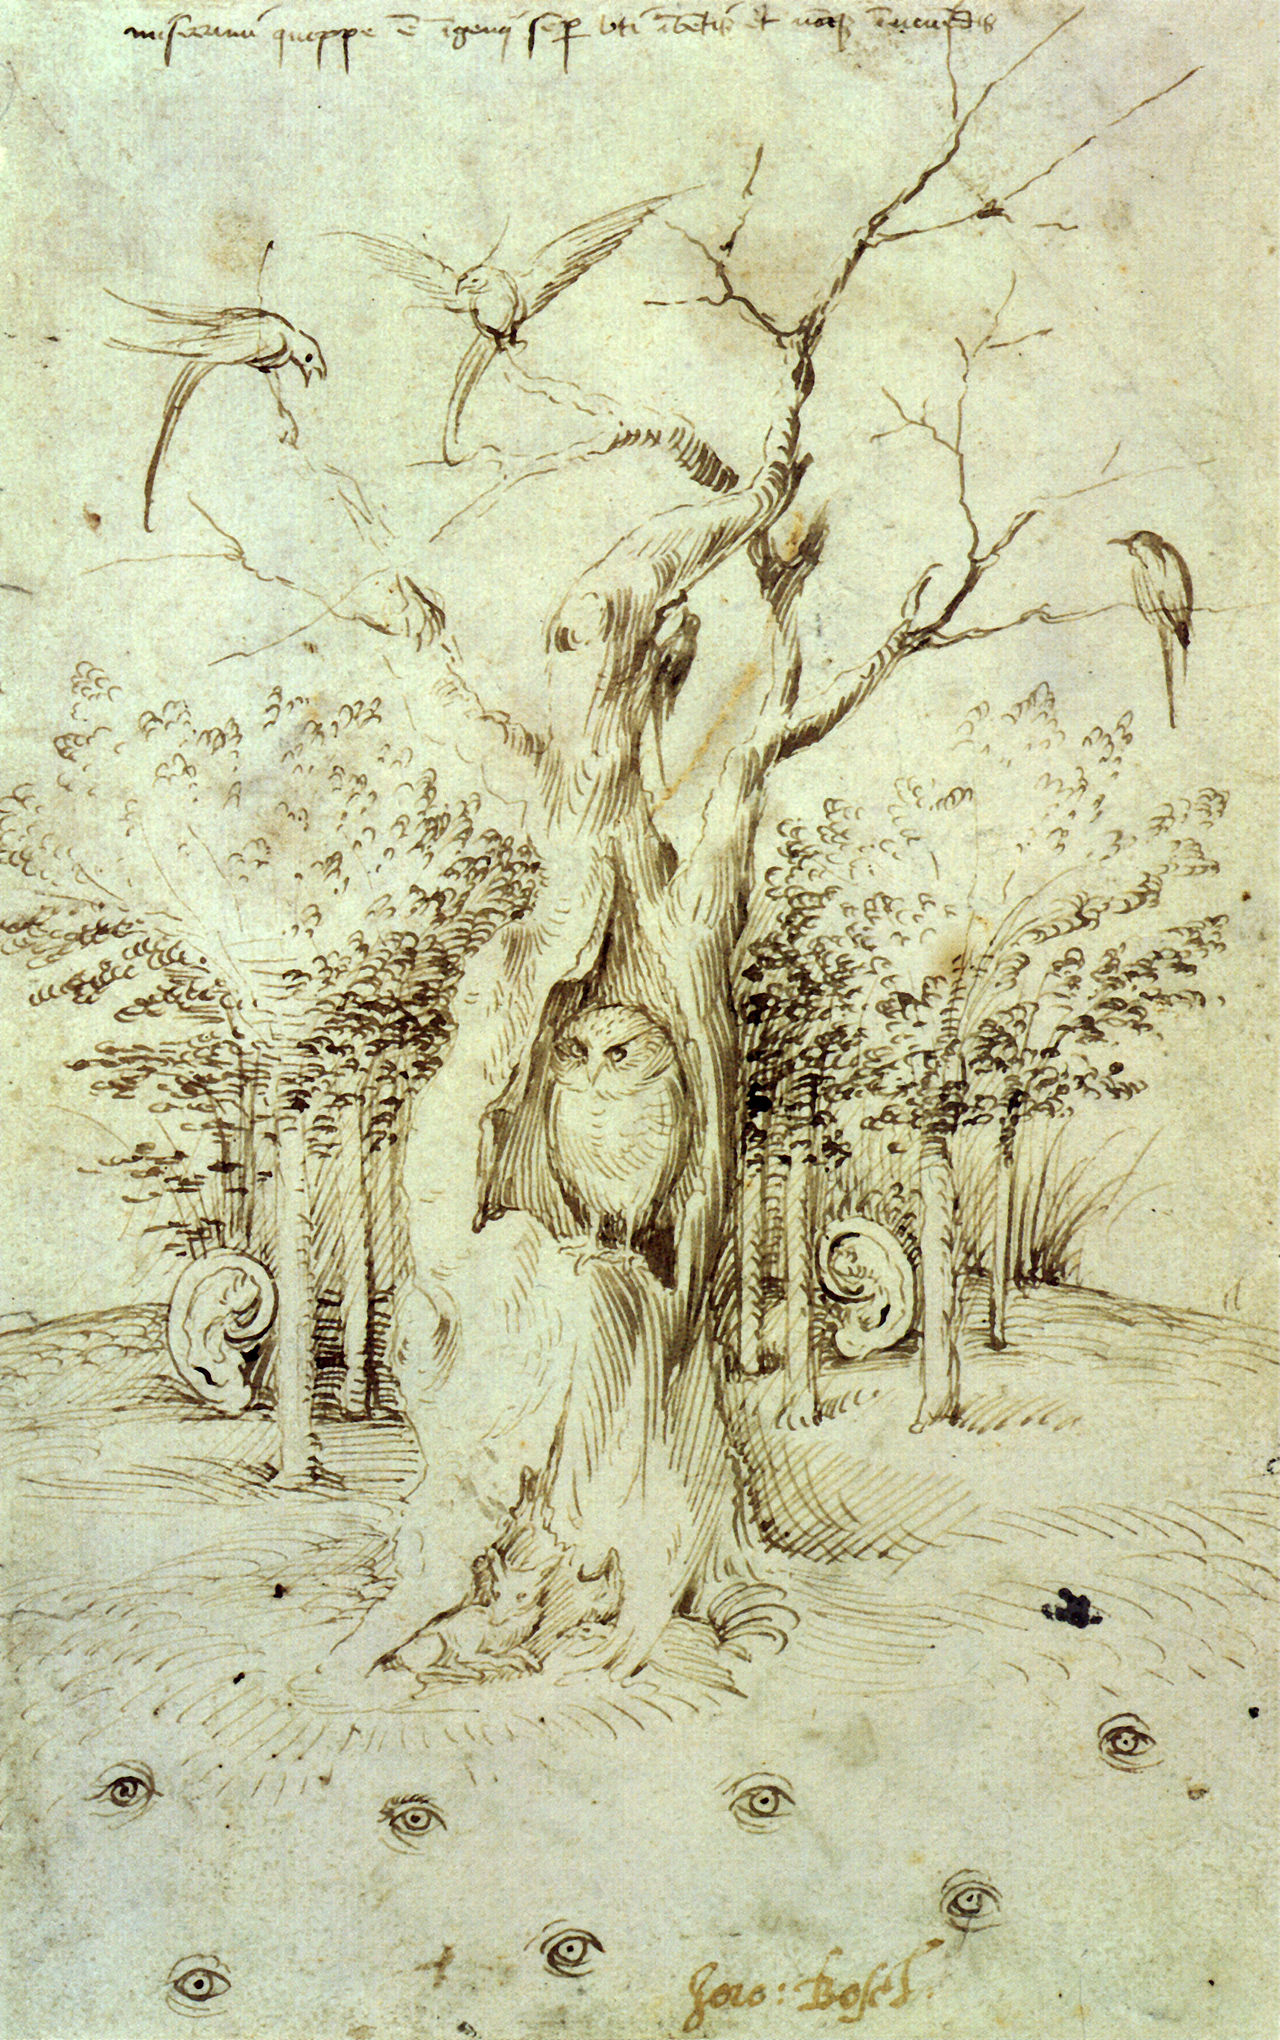 Hieronymus Bosch - The Trees Have Ears And The Field Has Eyes, 1500